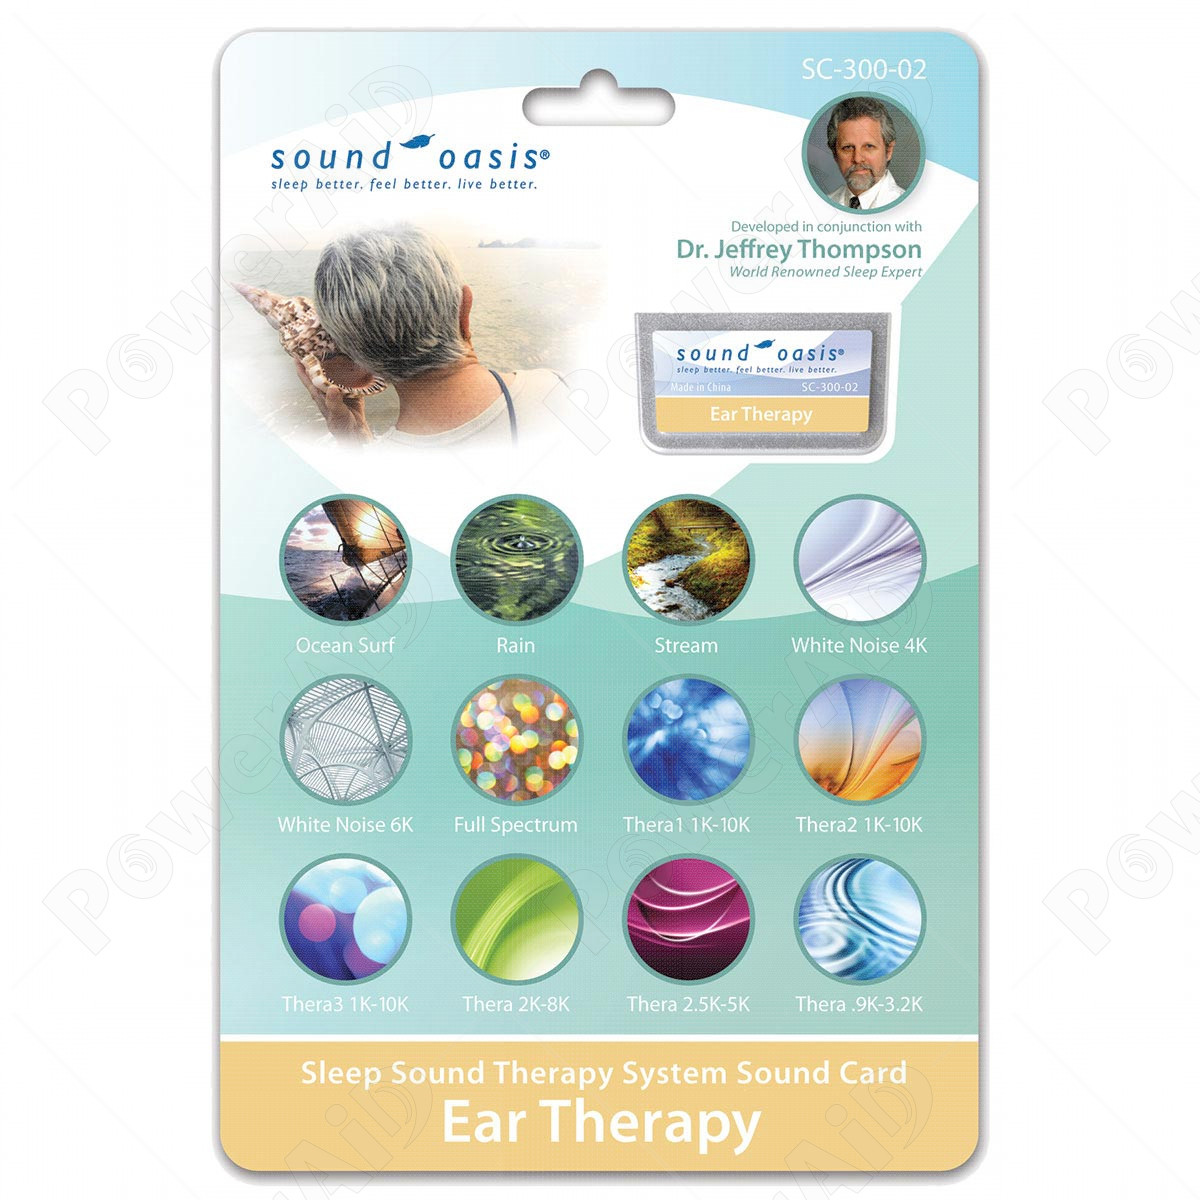 Sound Oasis - Scheda Sonora SC-300-02 Ear Therapy